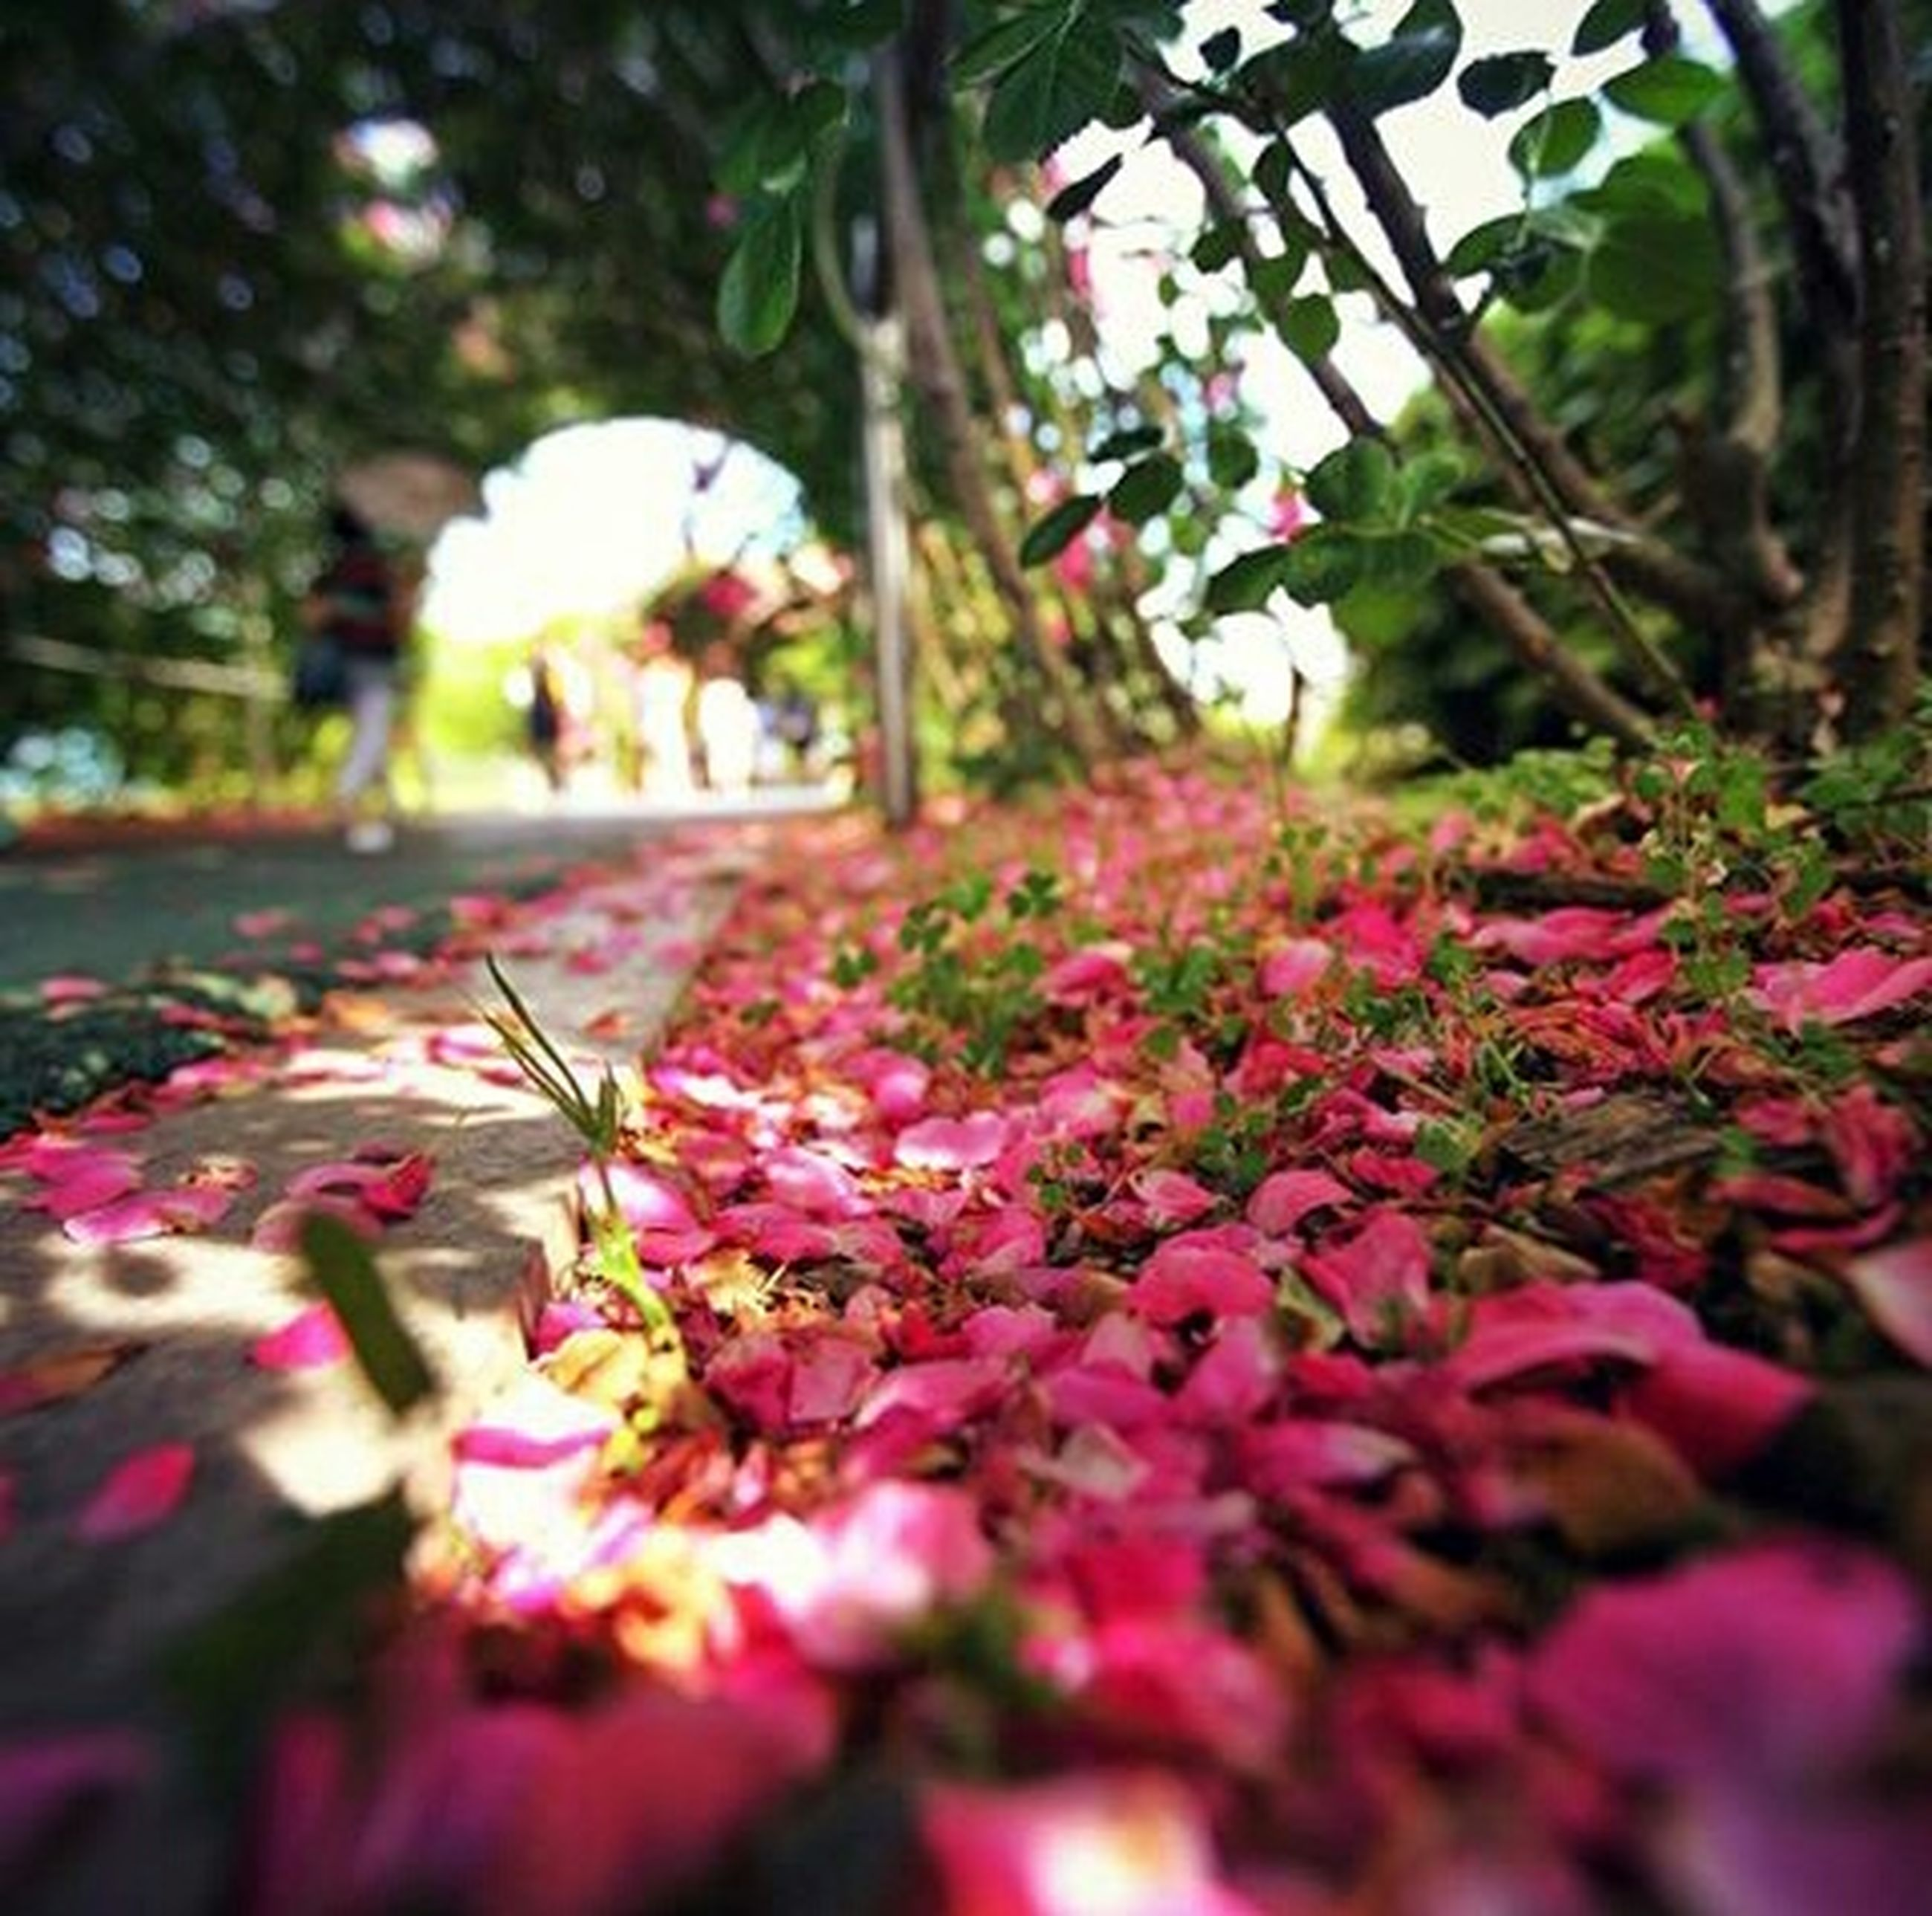 flower, freshness, growth, tree, fragility, petal, beauty in nature, nature, blooming, blossom, selective focus, in bloom, focus on foreground, close-up, plant, park - man made space, springtime, day, pink color, branch